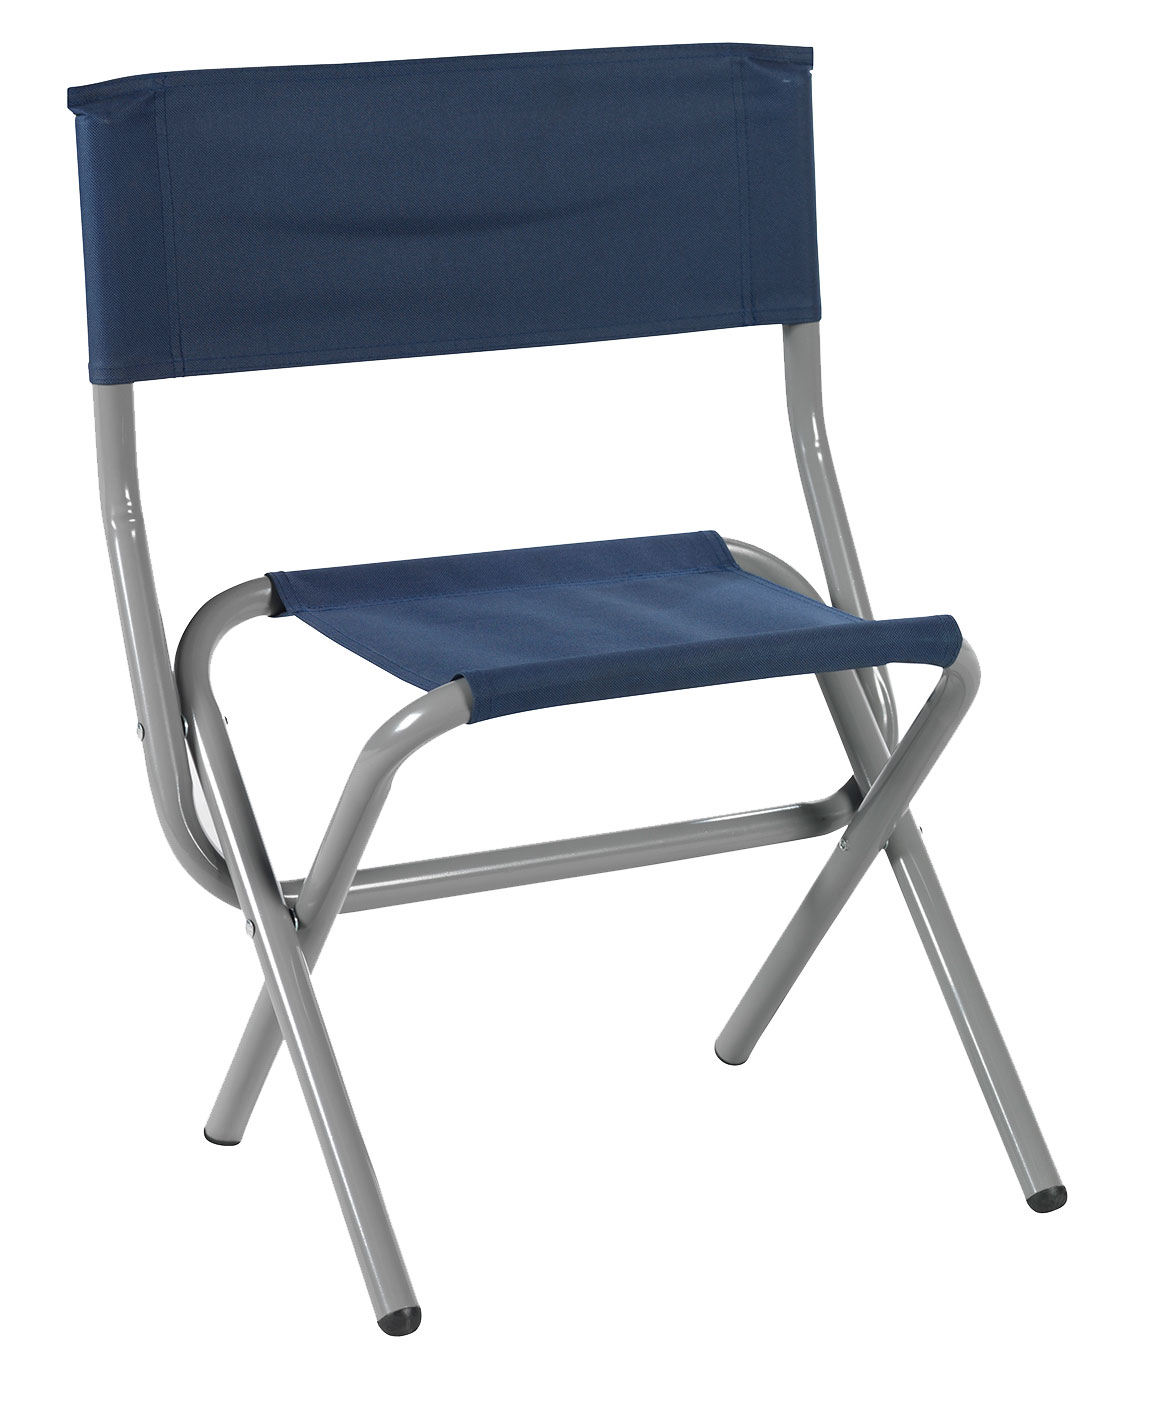 Blantex Folding Camping Chair Blue 2 Pack